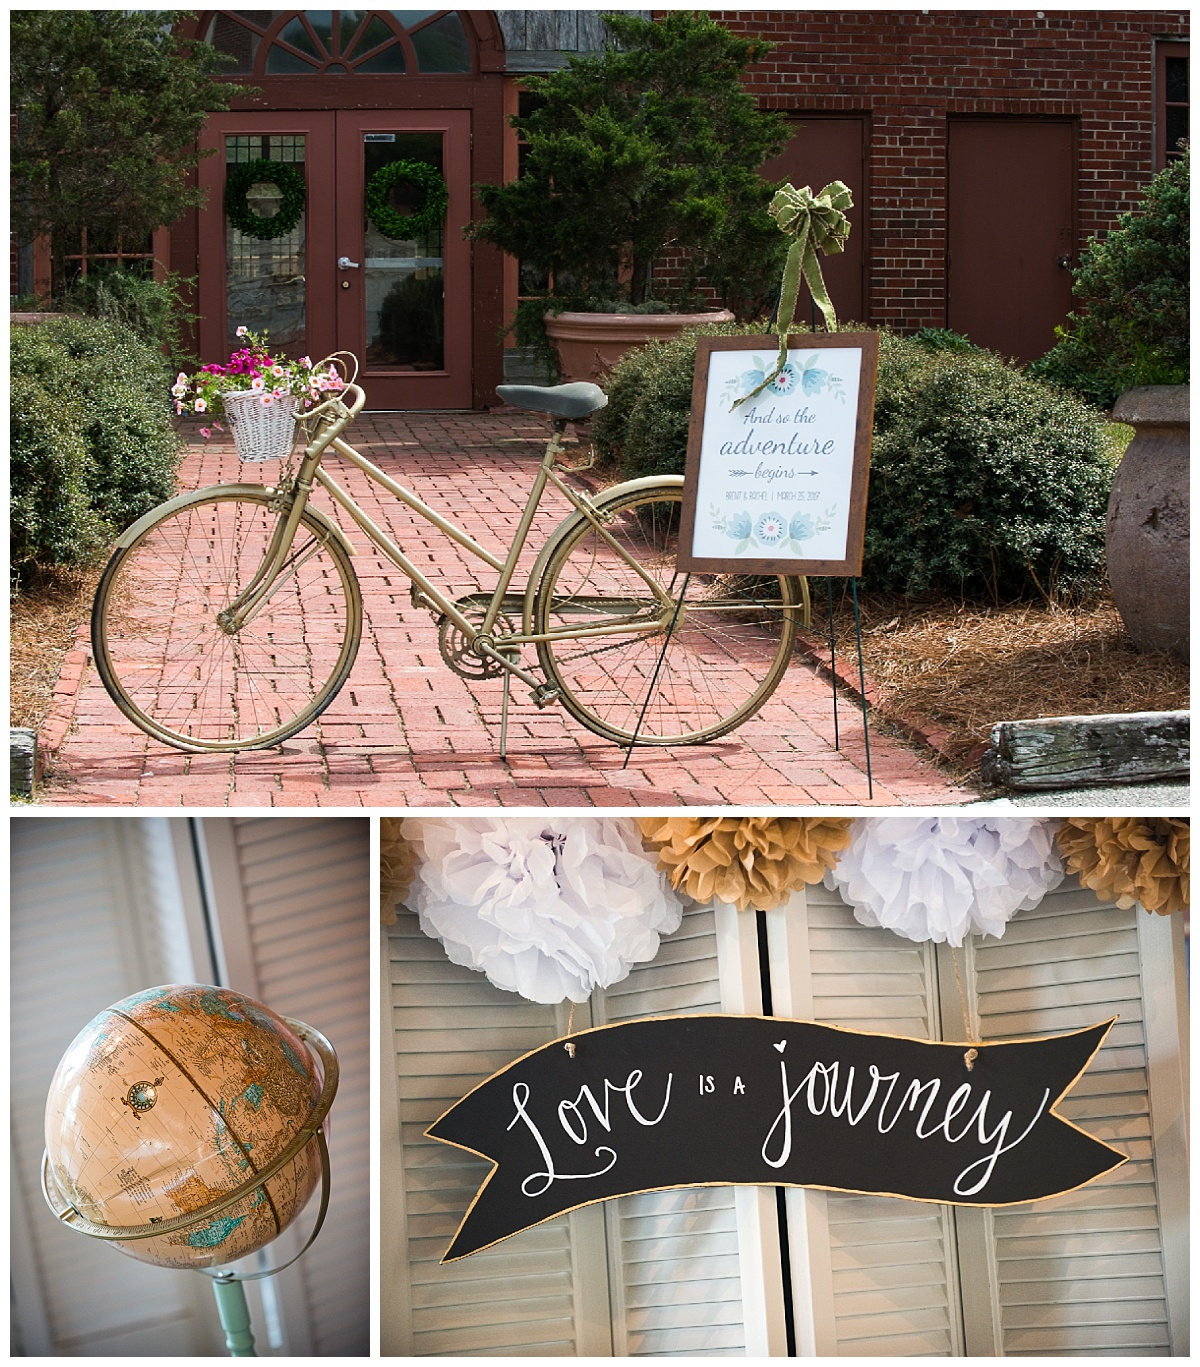 Travel themed wedding with antique bike and globes